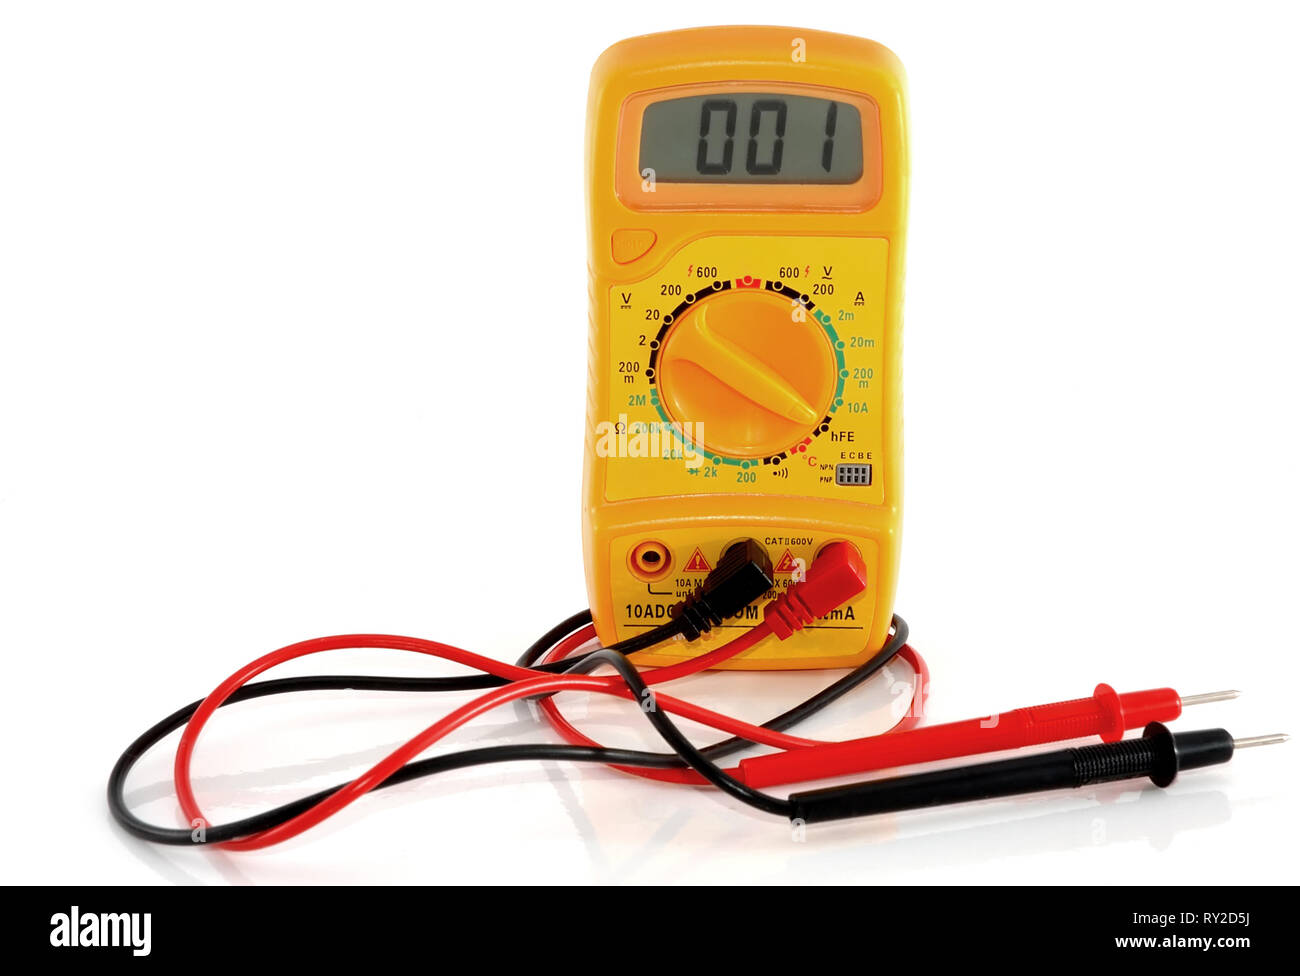 Yellow multimeter on white background - isolated - Stock Image